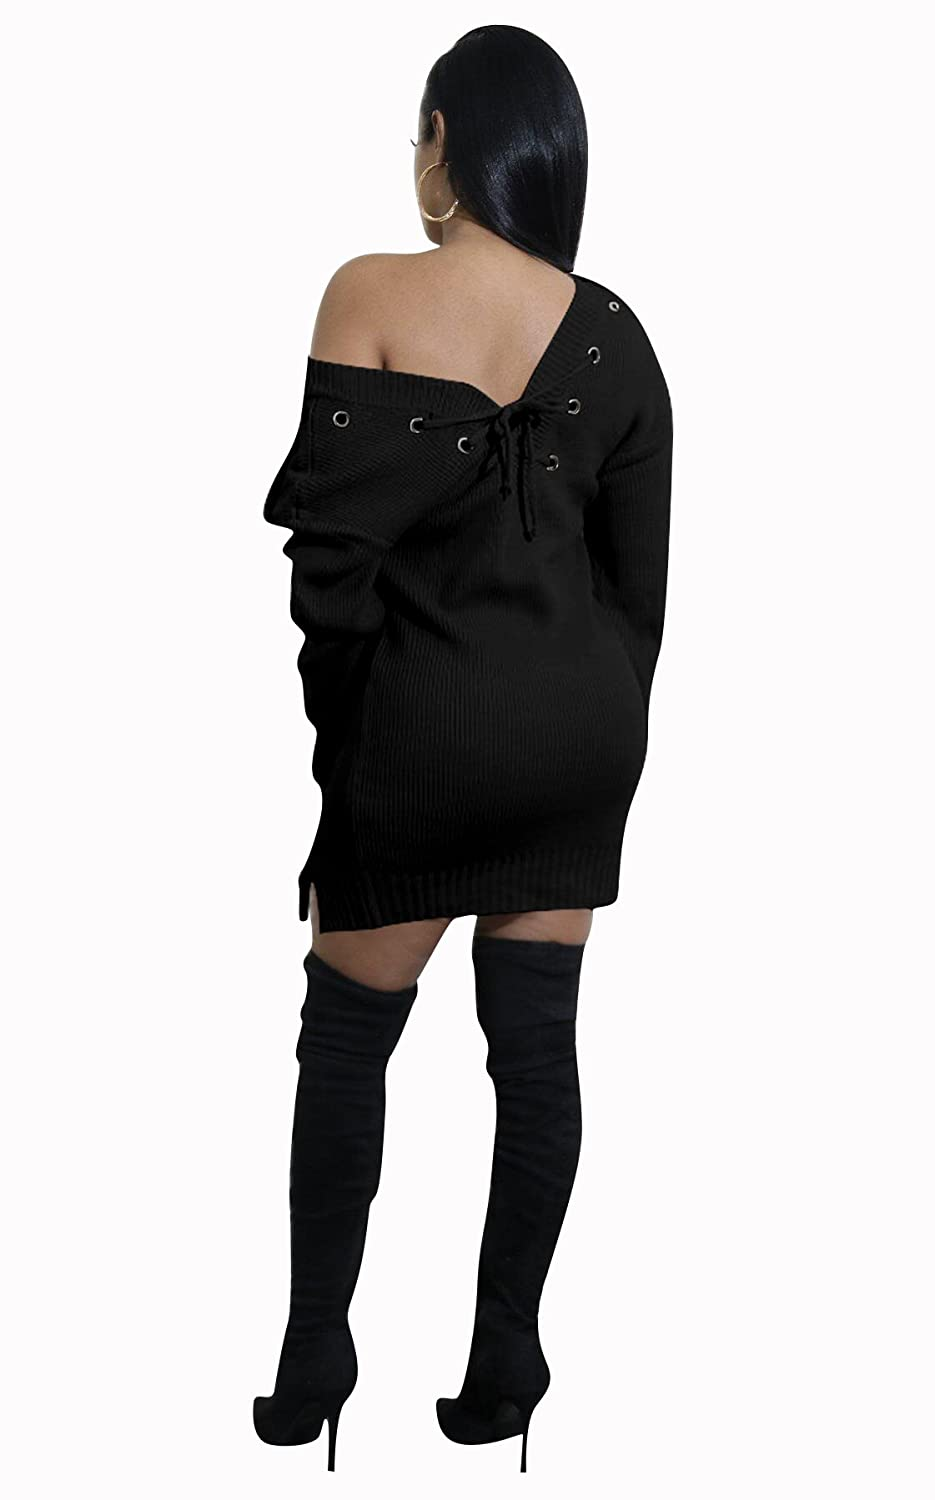 38f96d405fc Felicity Young Women s Long Sleeve V Neck Slim Fit Basic Knitted Sweater  Bodycon Mini Dress at Amazon Women s Clothing store